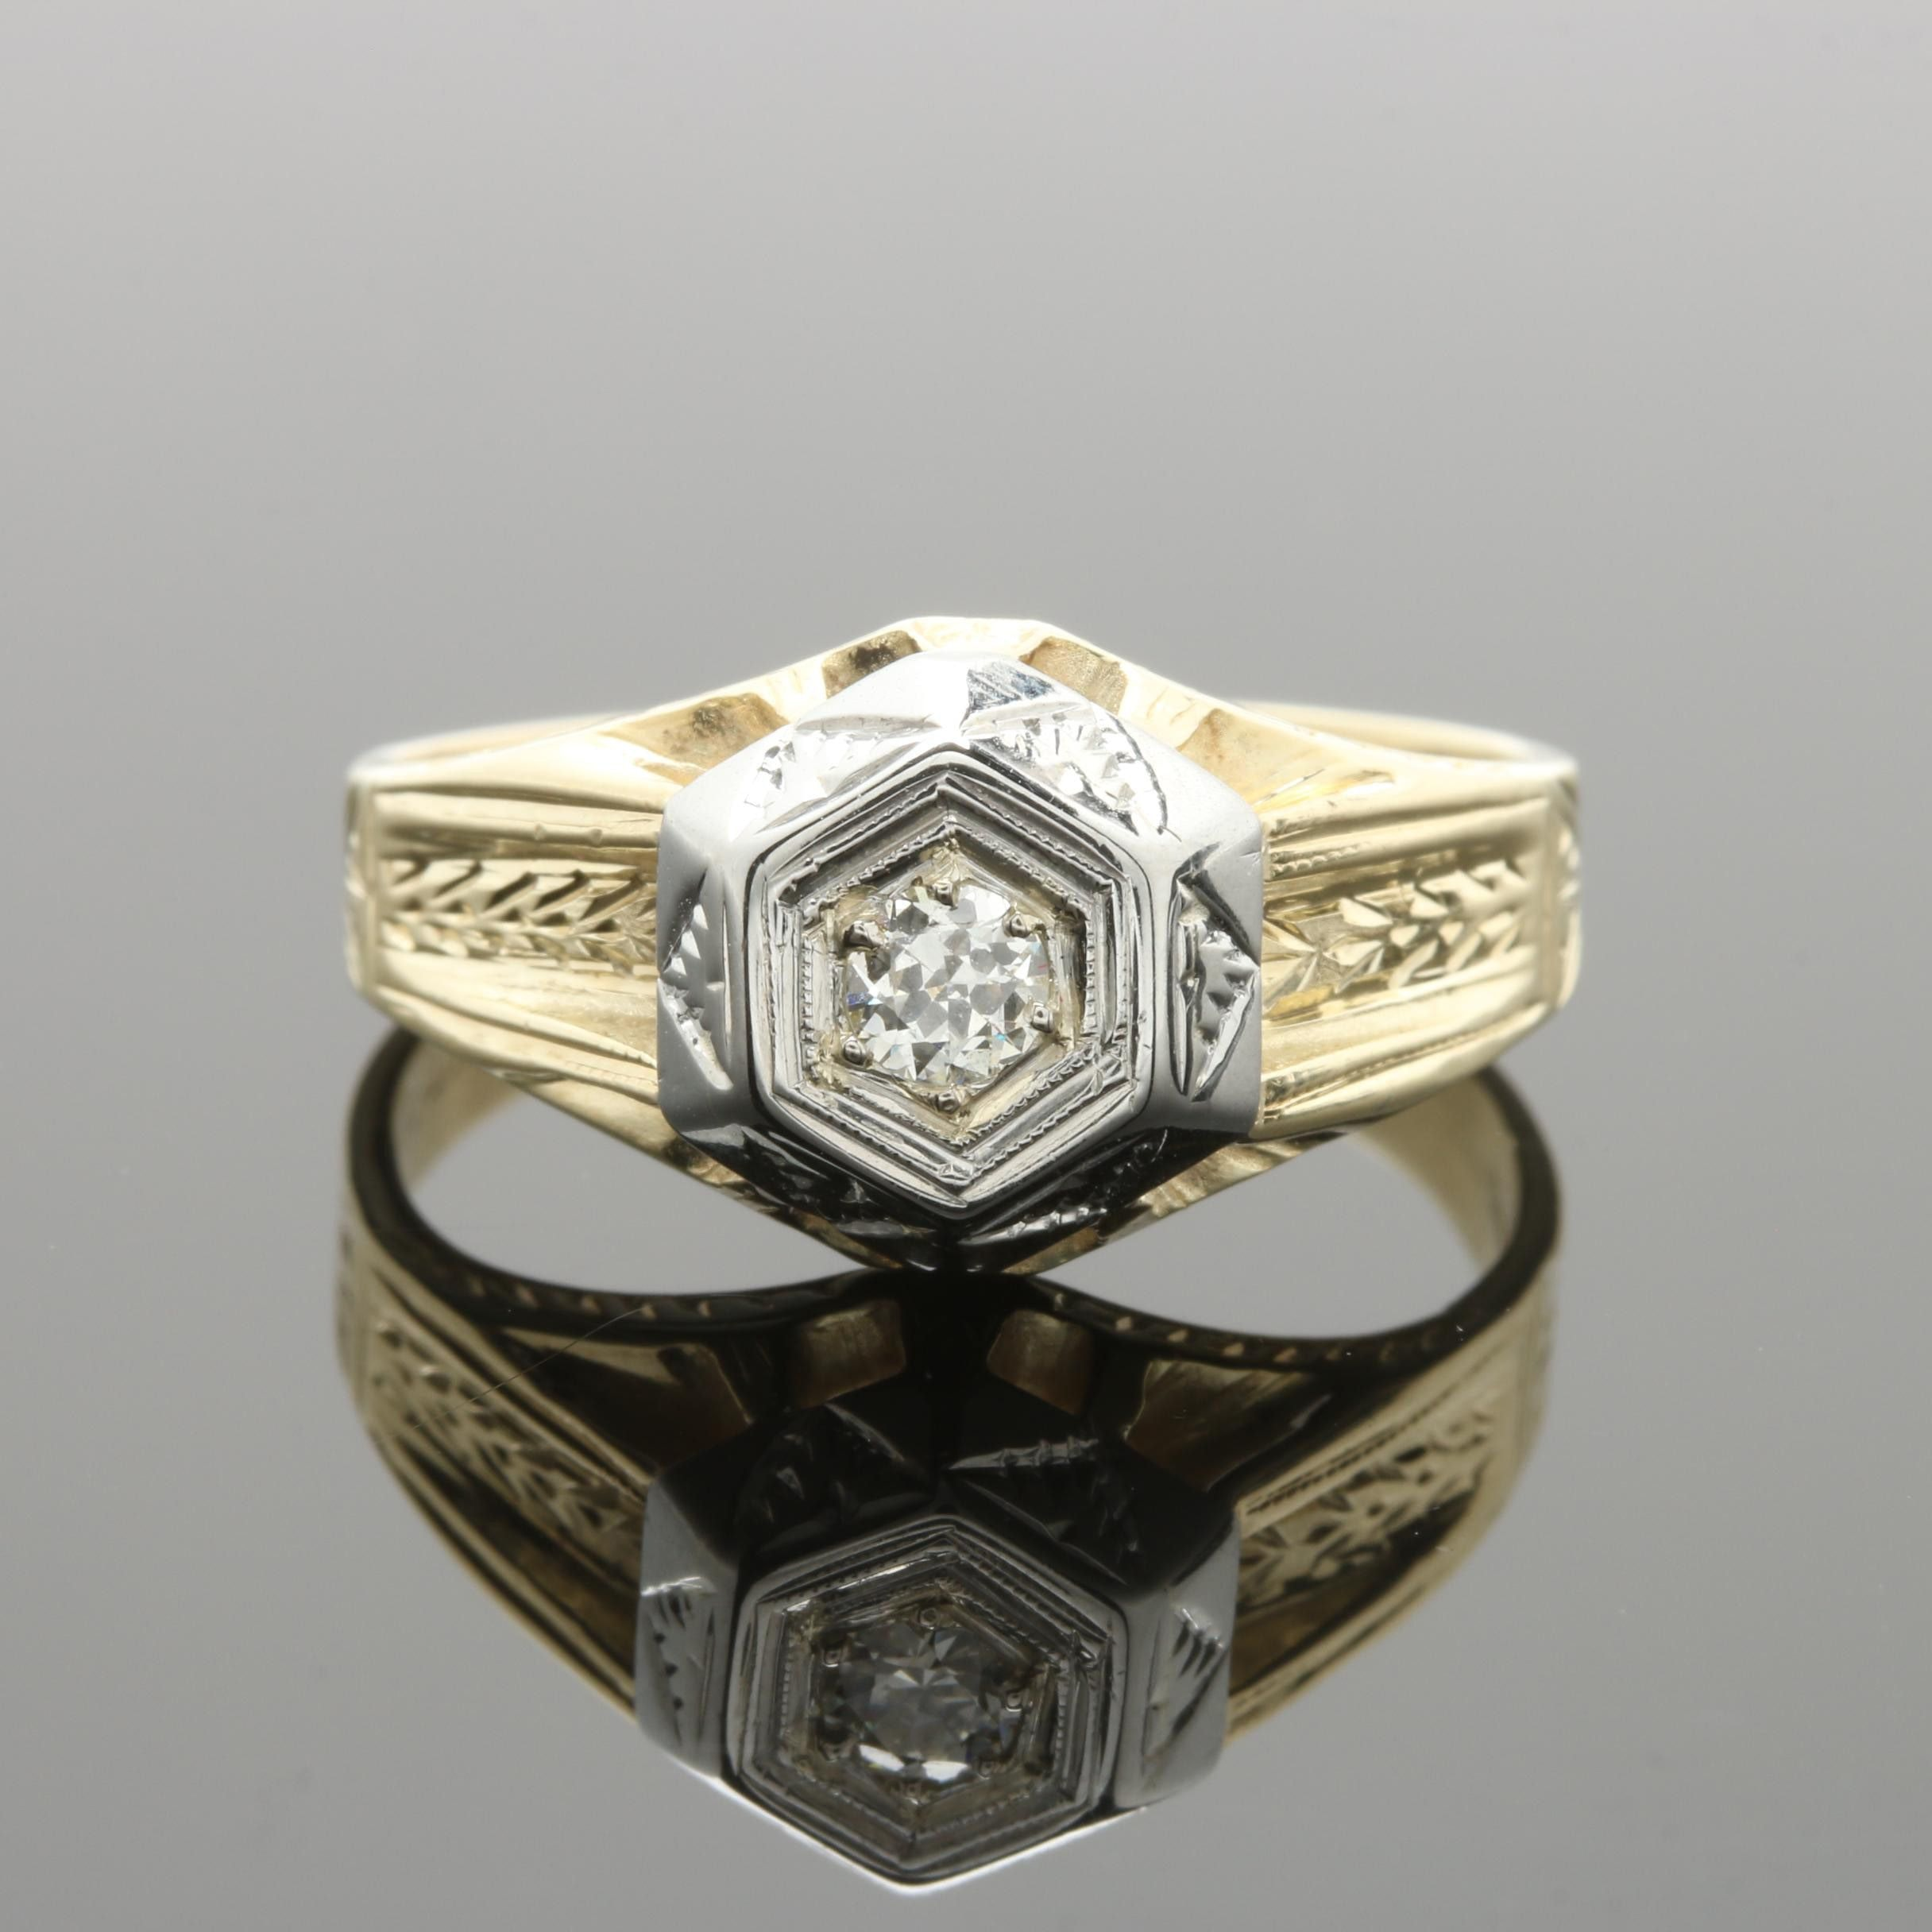 14K and 18K Two-Tone Gold Diamond Ring